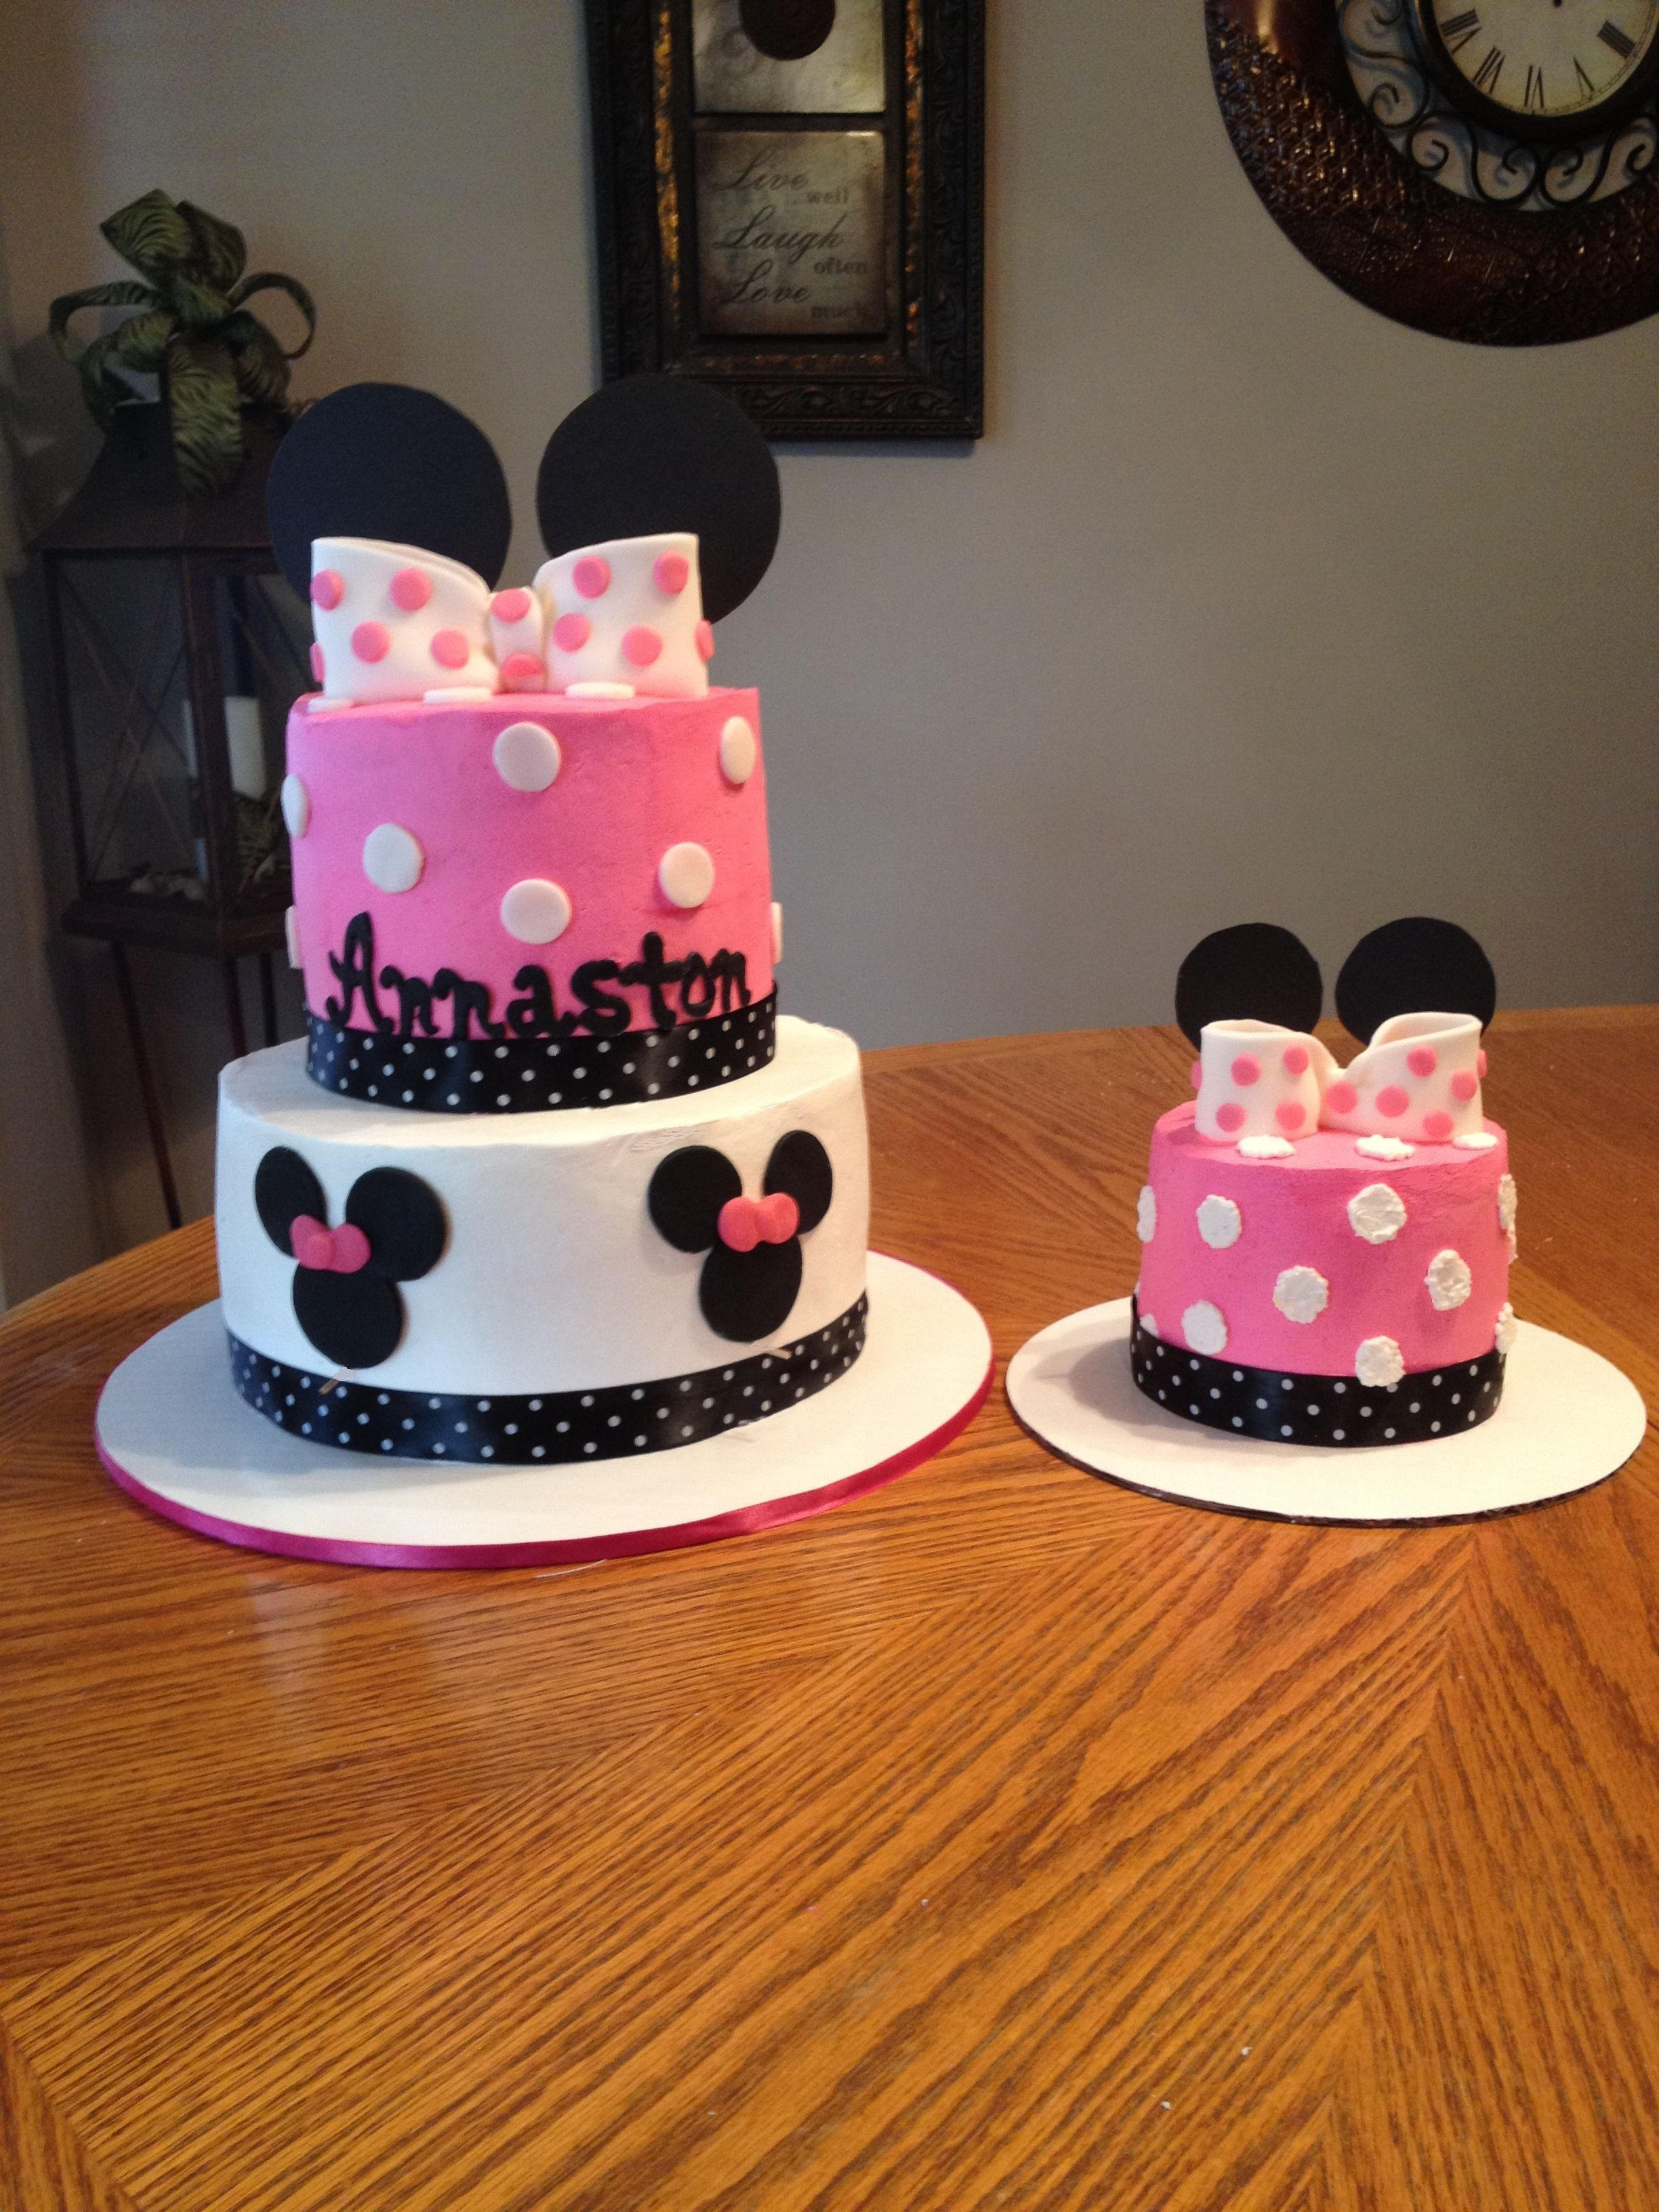 Minnie Mouse Birthday Cakes In 2020 Minnie Mouse First Birthday Minnie Mouse Birthday Cakes Minnie Birthday Party